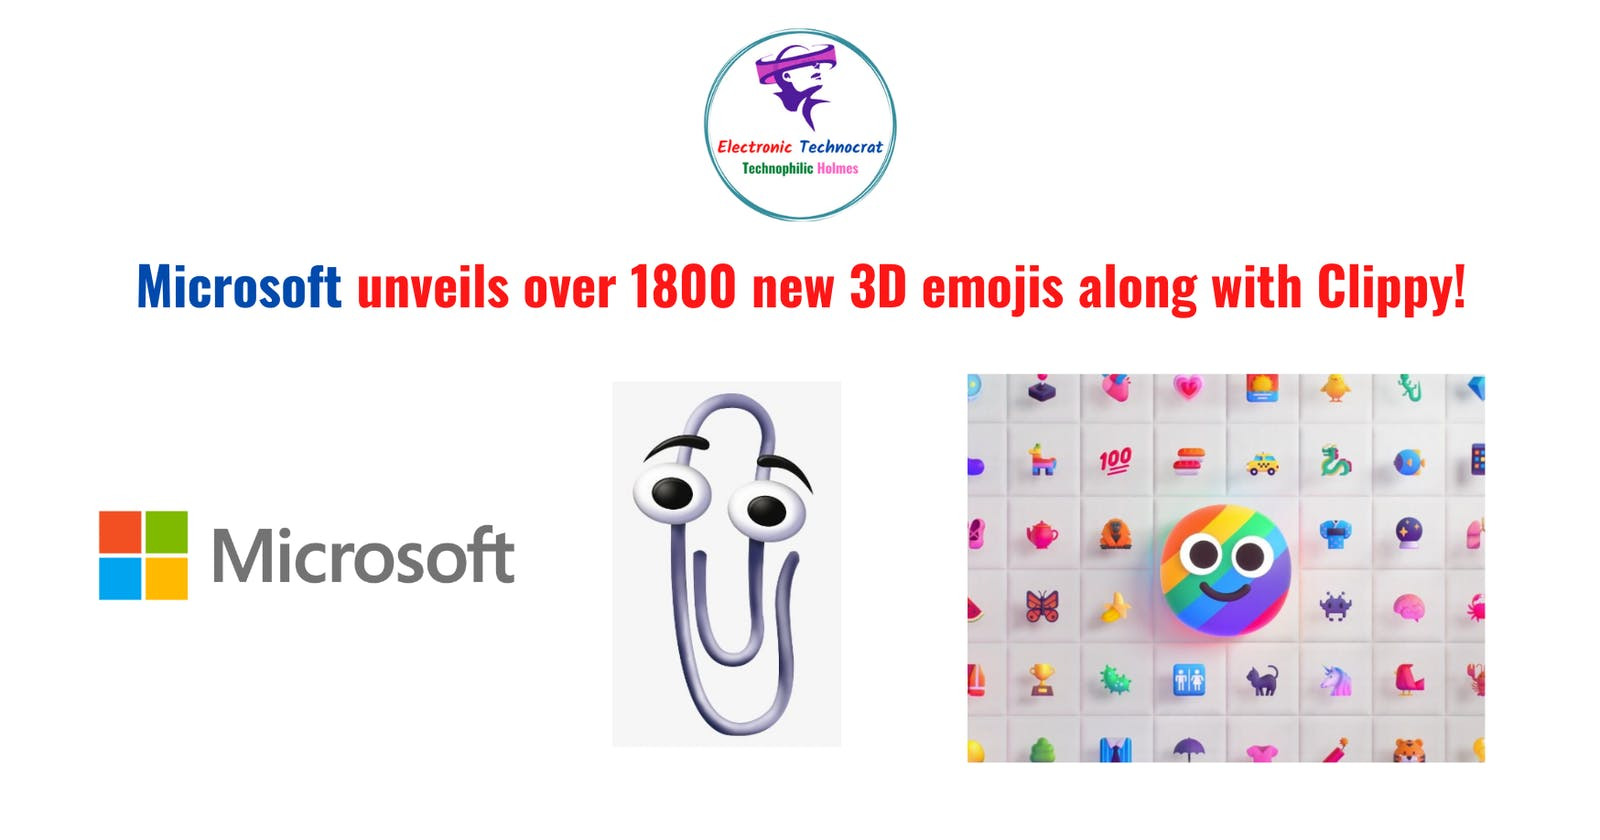 Microsoft unveils over 1800 new 3D emojis along with Clippy!